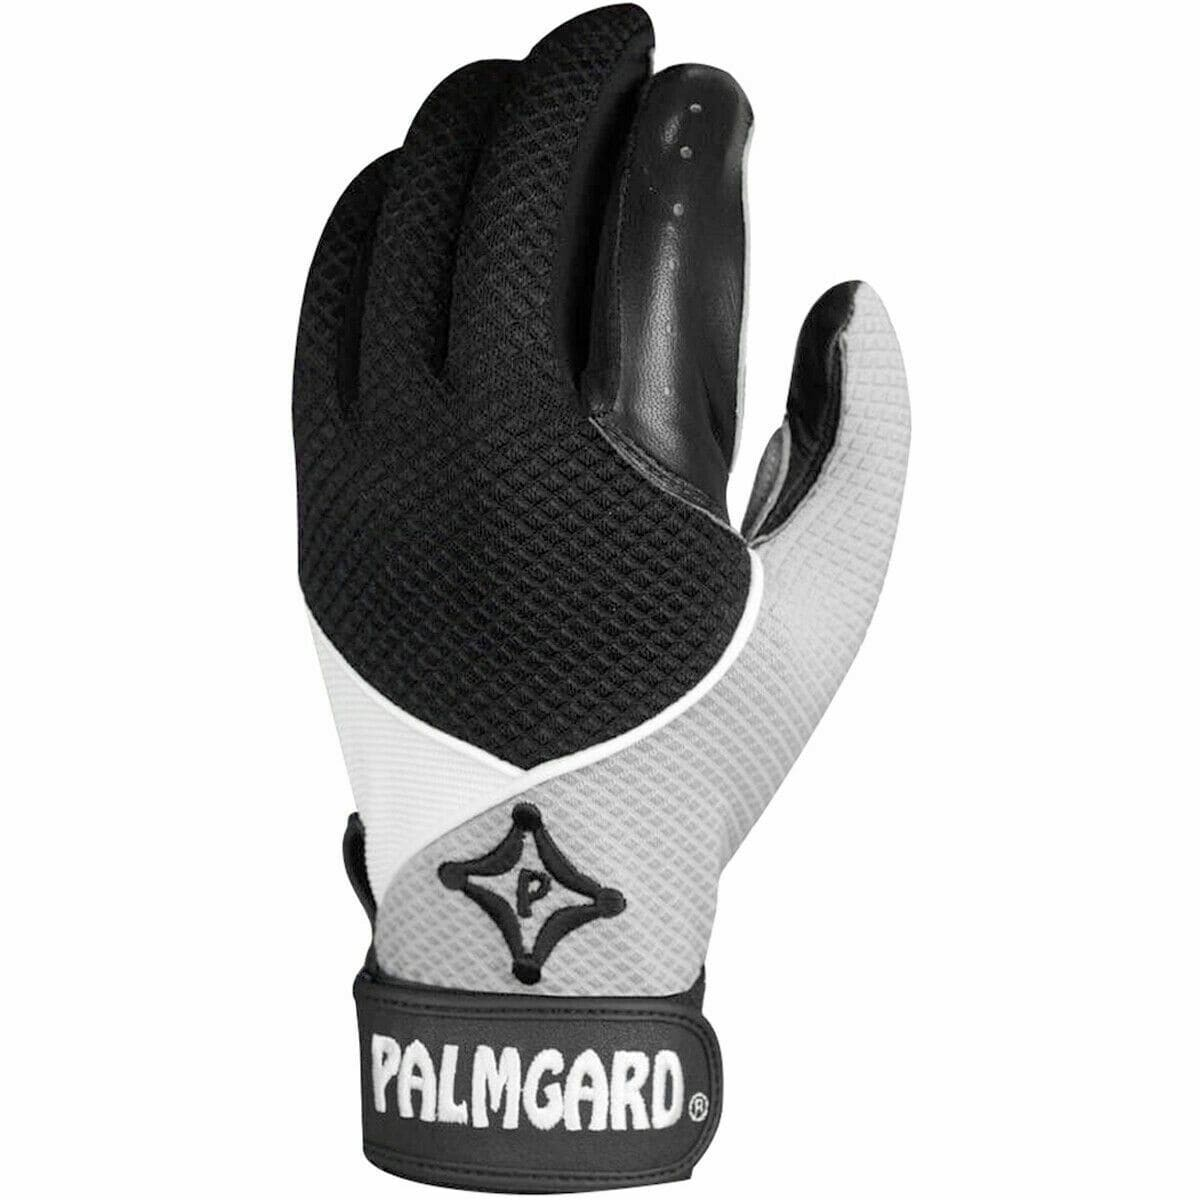 Fron of the markwort palmguard padded glove for catchers